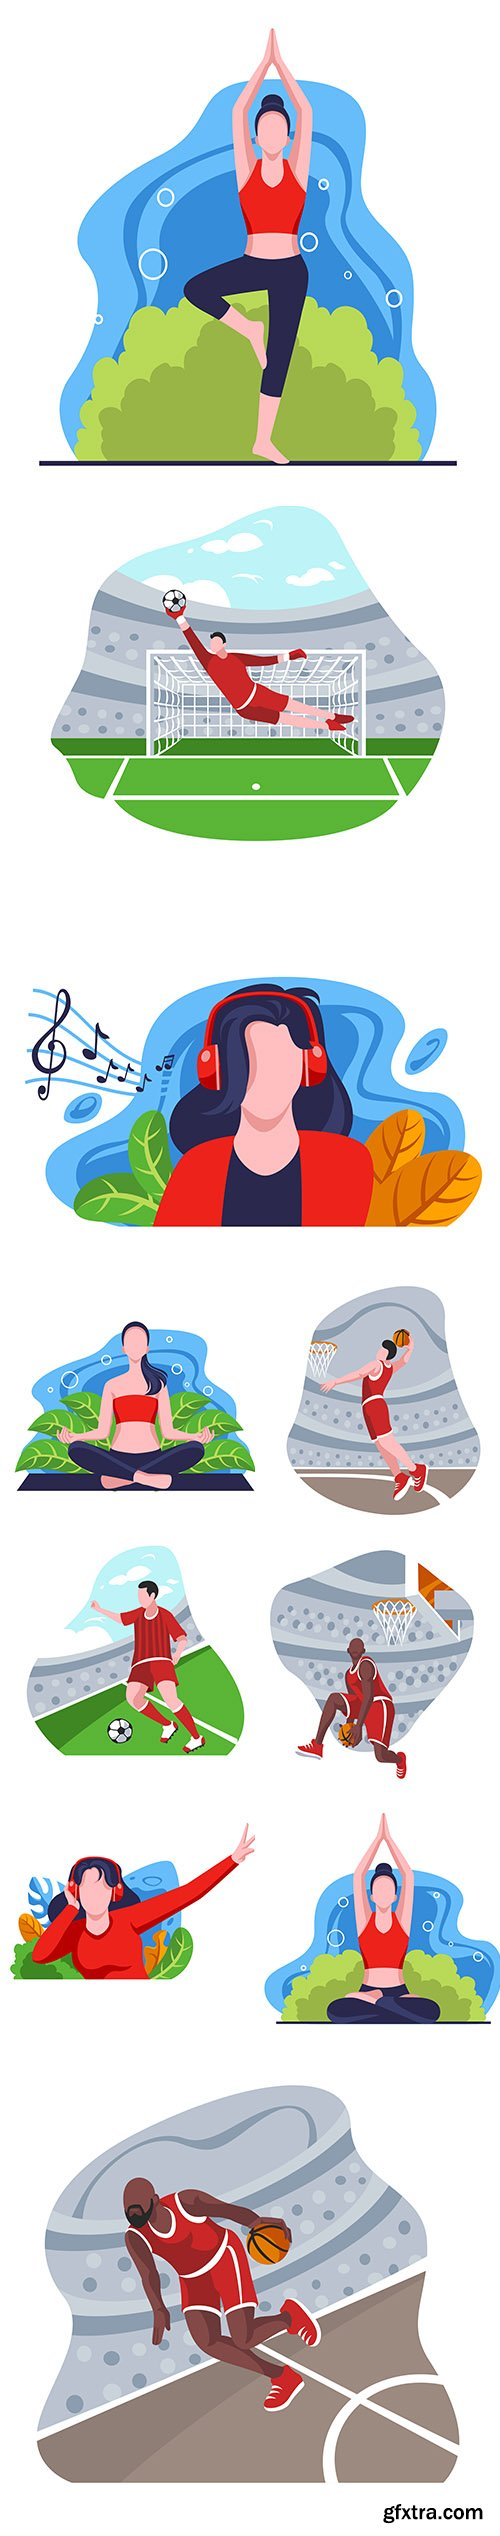 Yoga and Sport Activities Flat Design Illustration